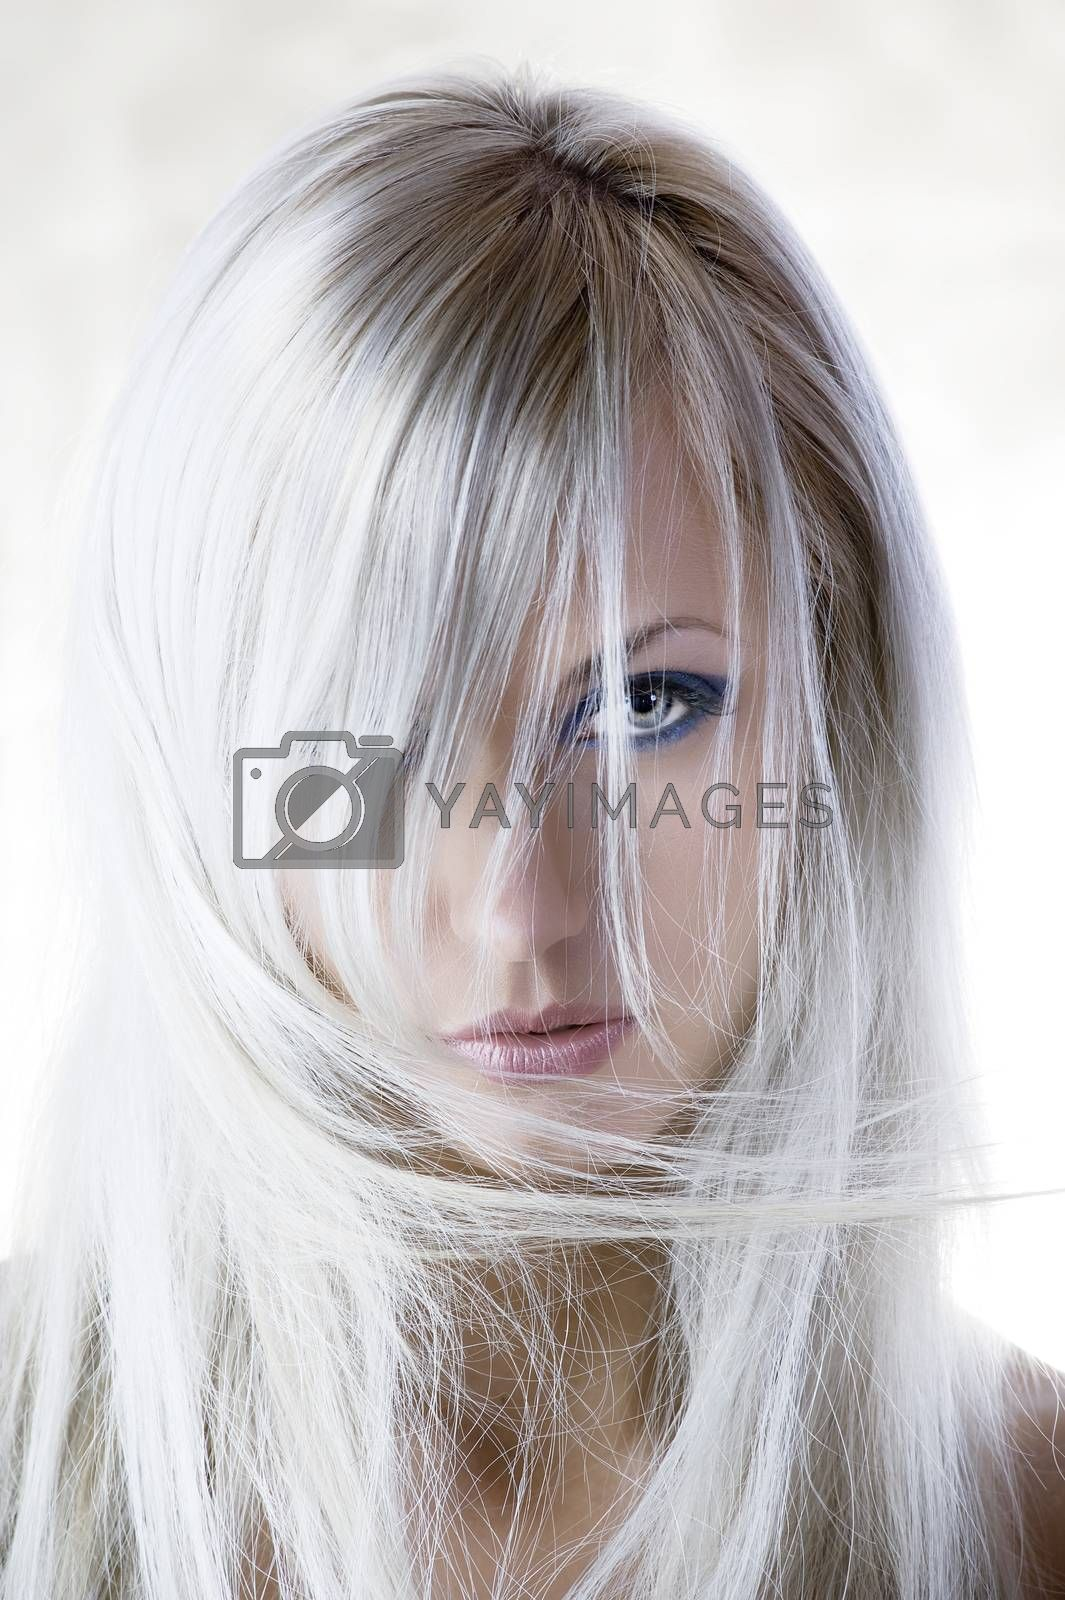 Royalty free image of between the hair by fotoCD